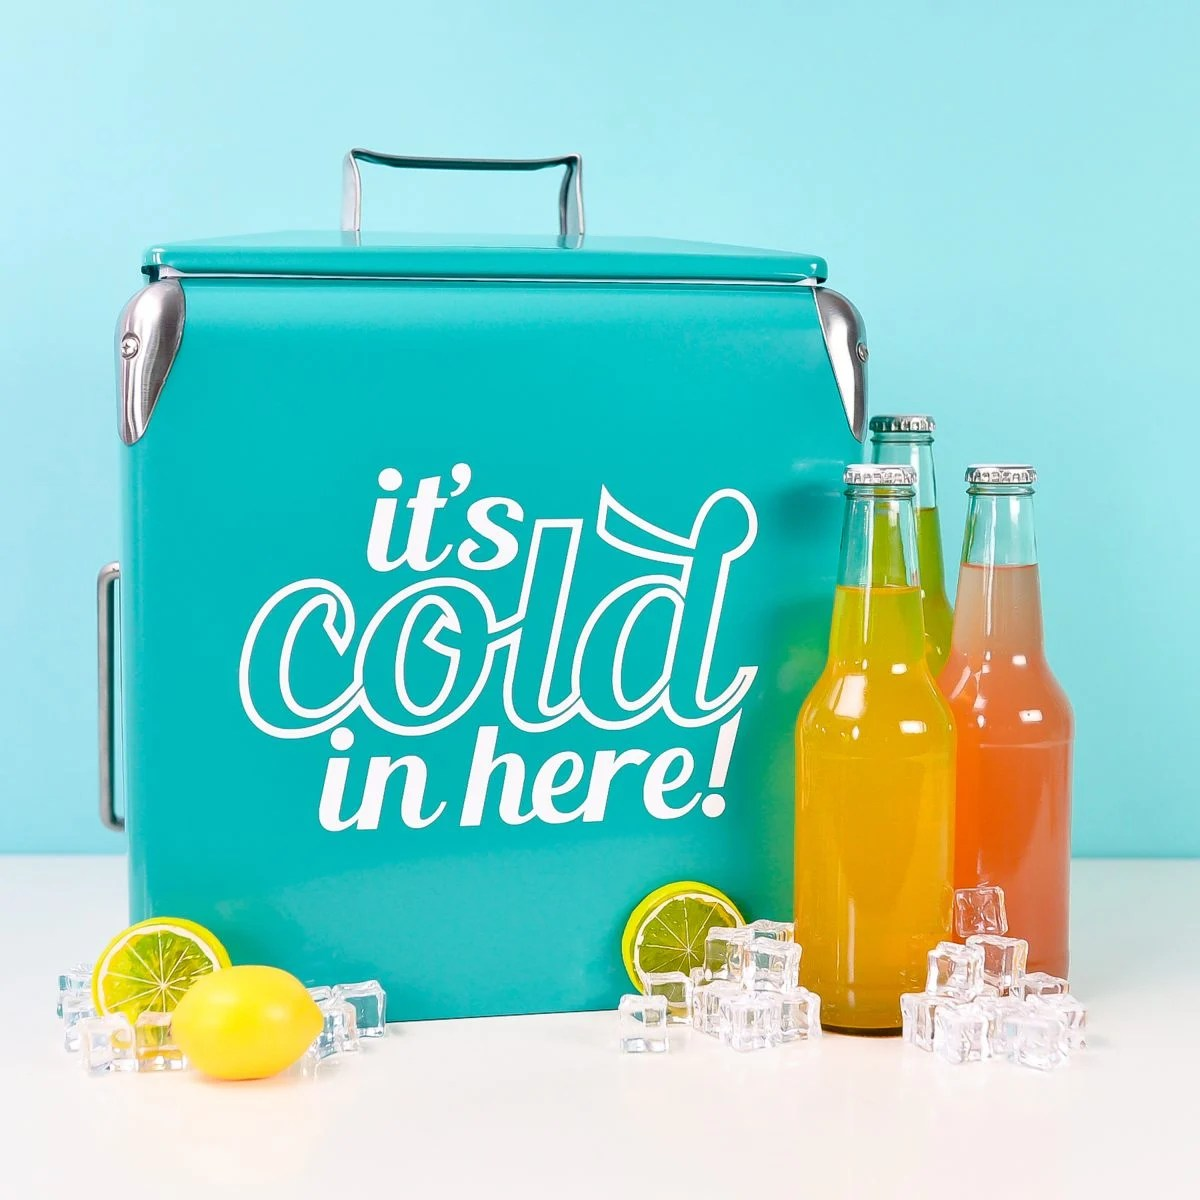 Final ice cooler, staged with drinks and fake ice